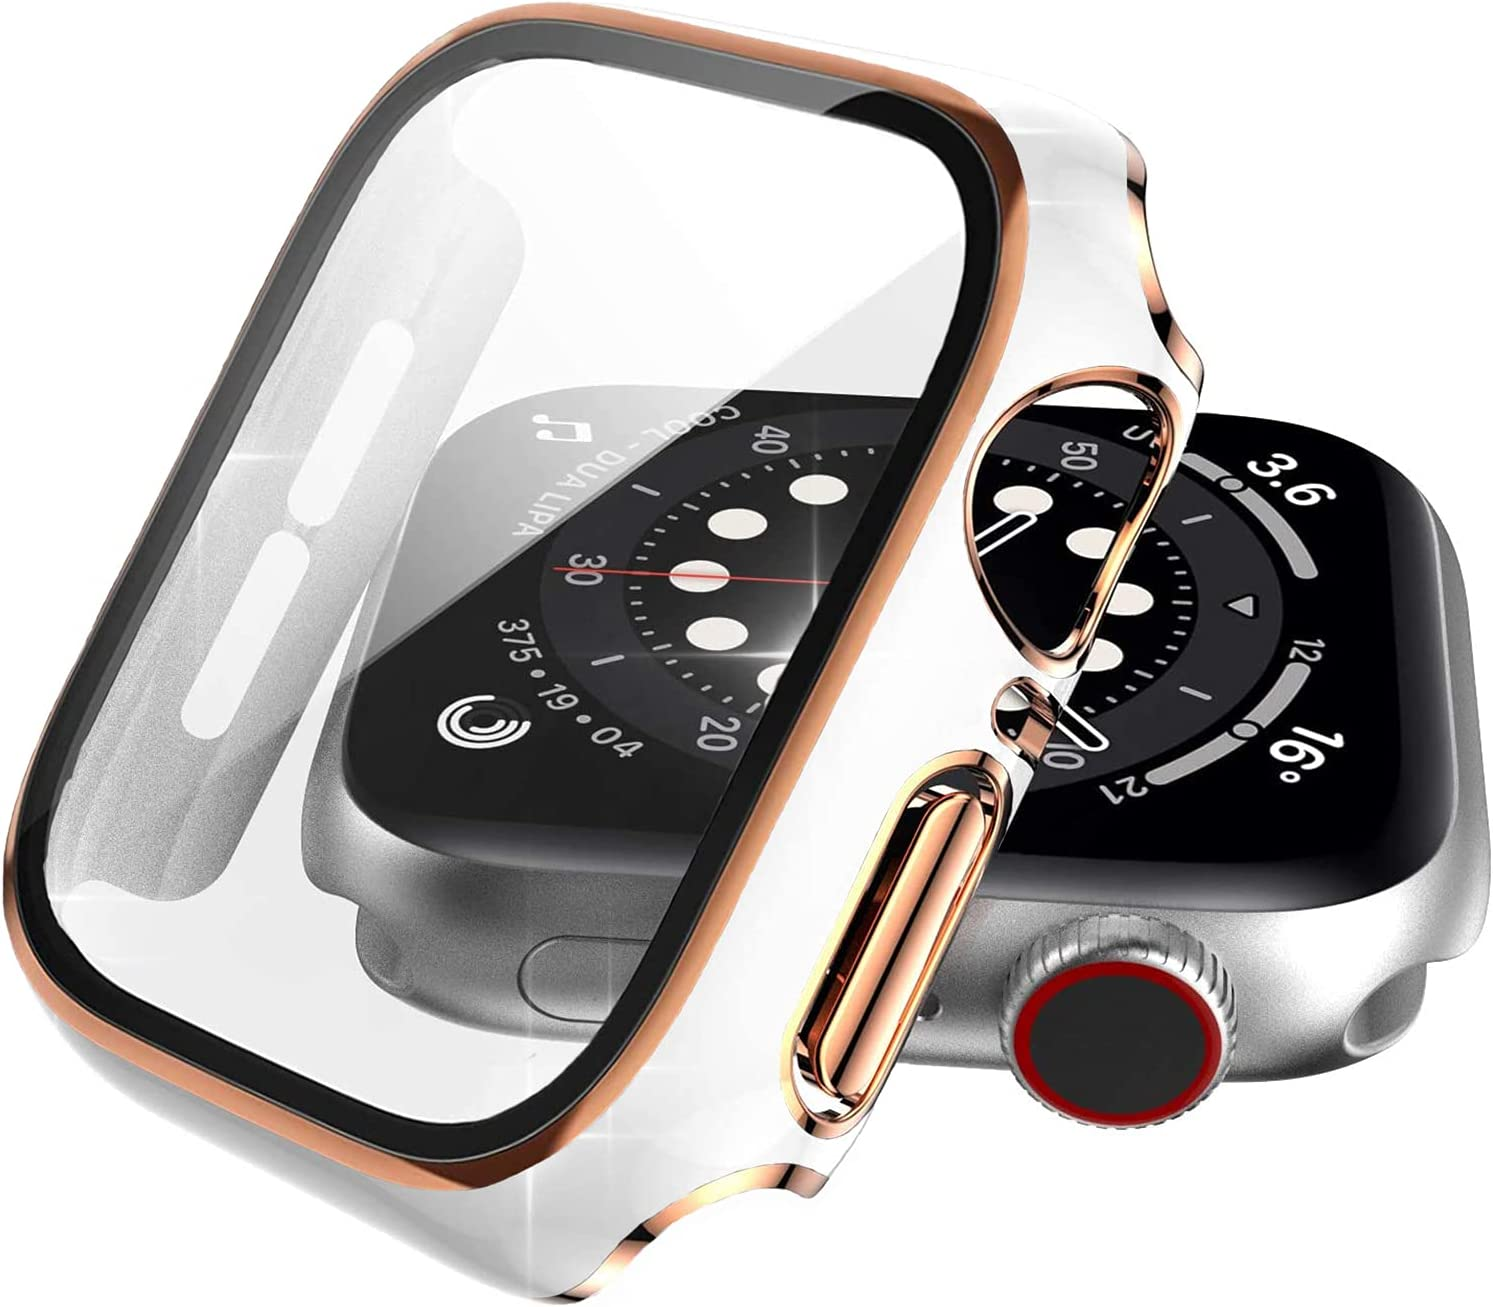 Choiche Compatible Apple Watch Case 42mm Series 3 / 2 / 1 with Screen Protector Accessories, White Defense Bumper with Rose Gold Edge Designed Full Coverage Guard Cover for Women Men iWatch